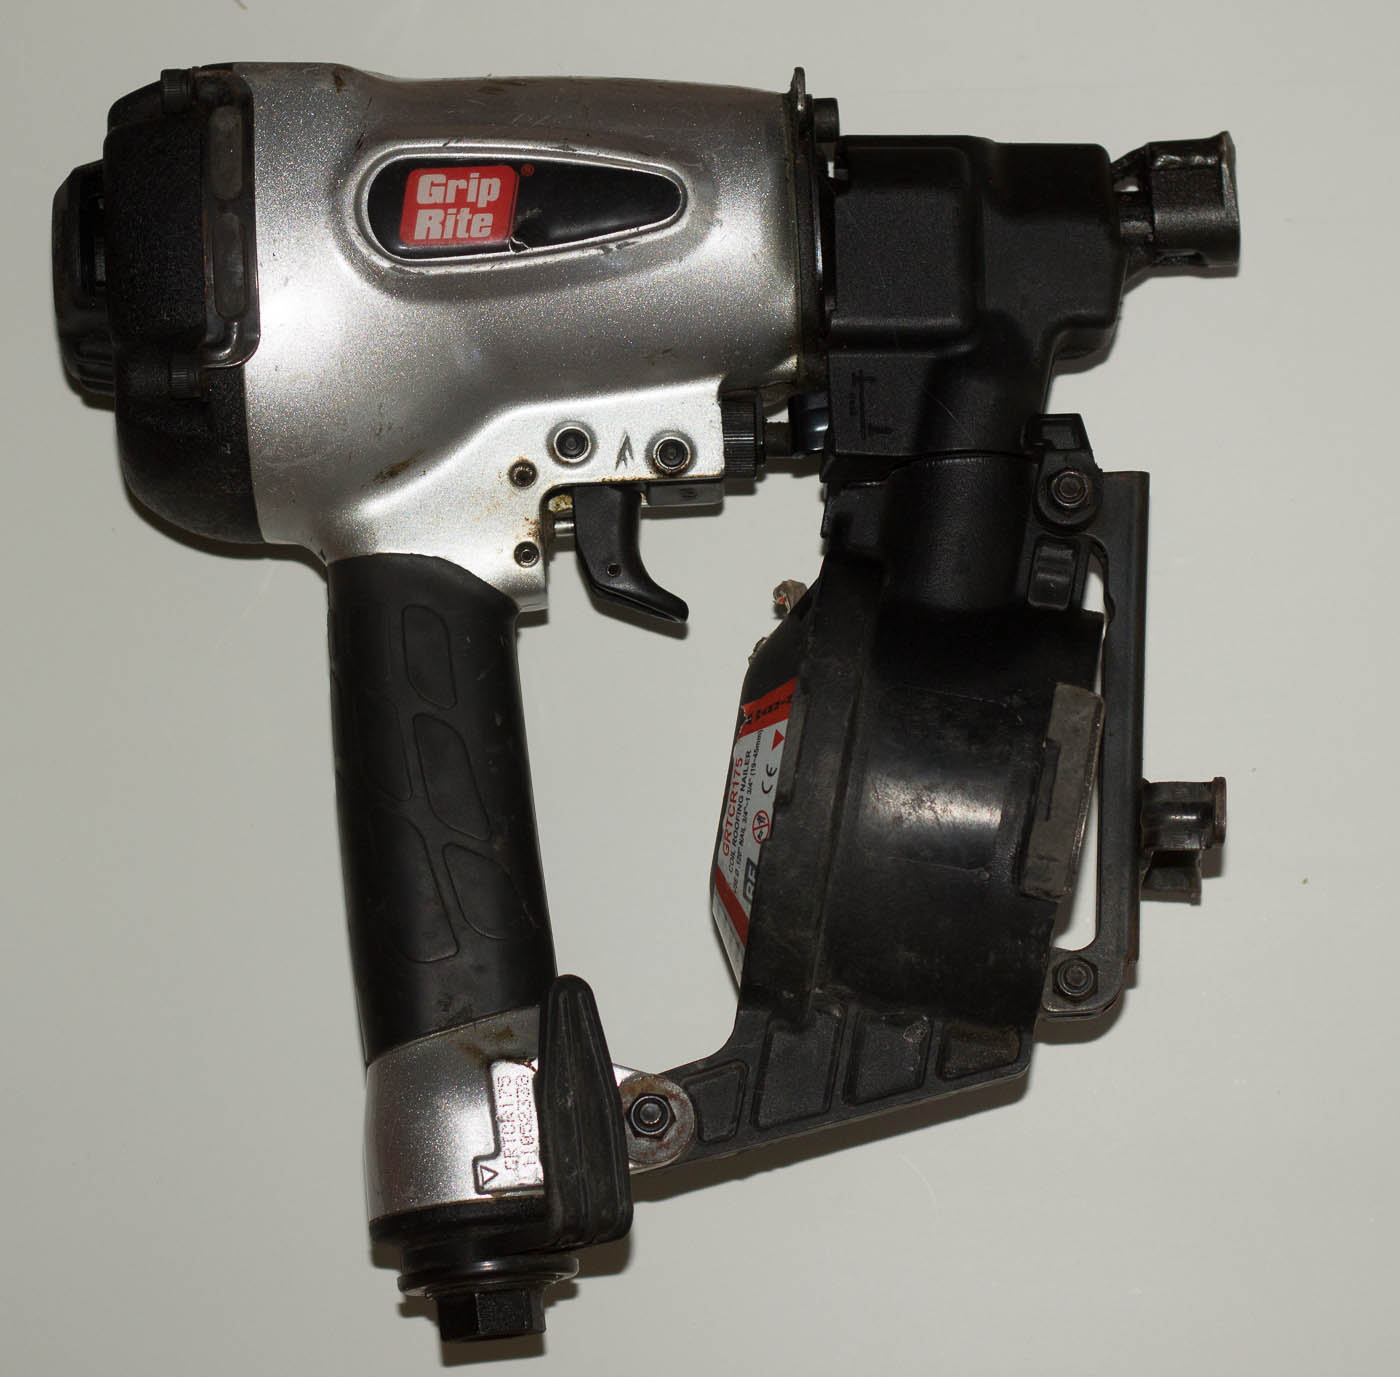 Grip Rite Roofing Coil Nailer